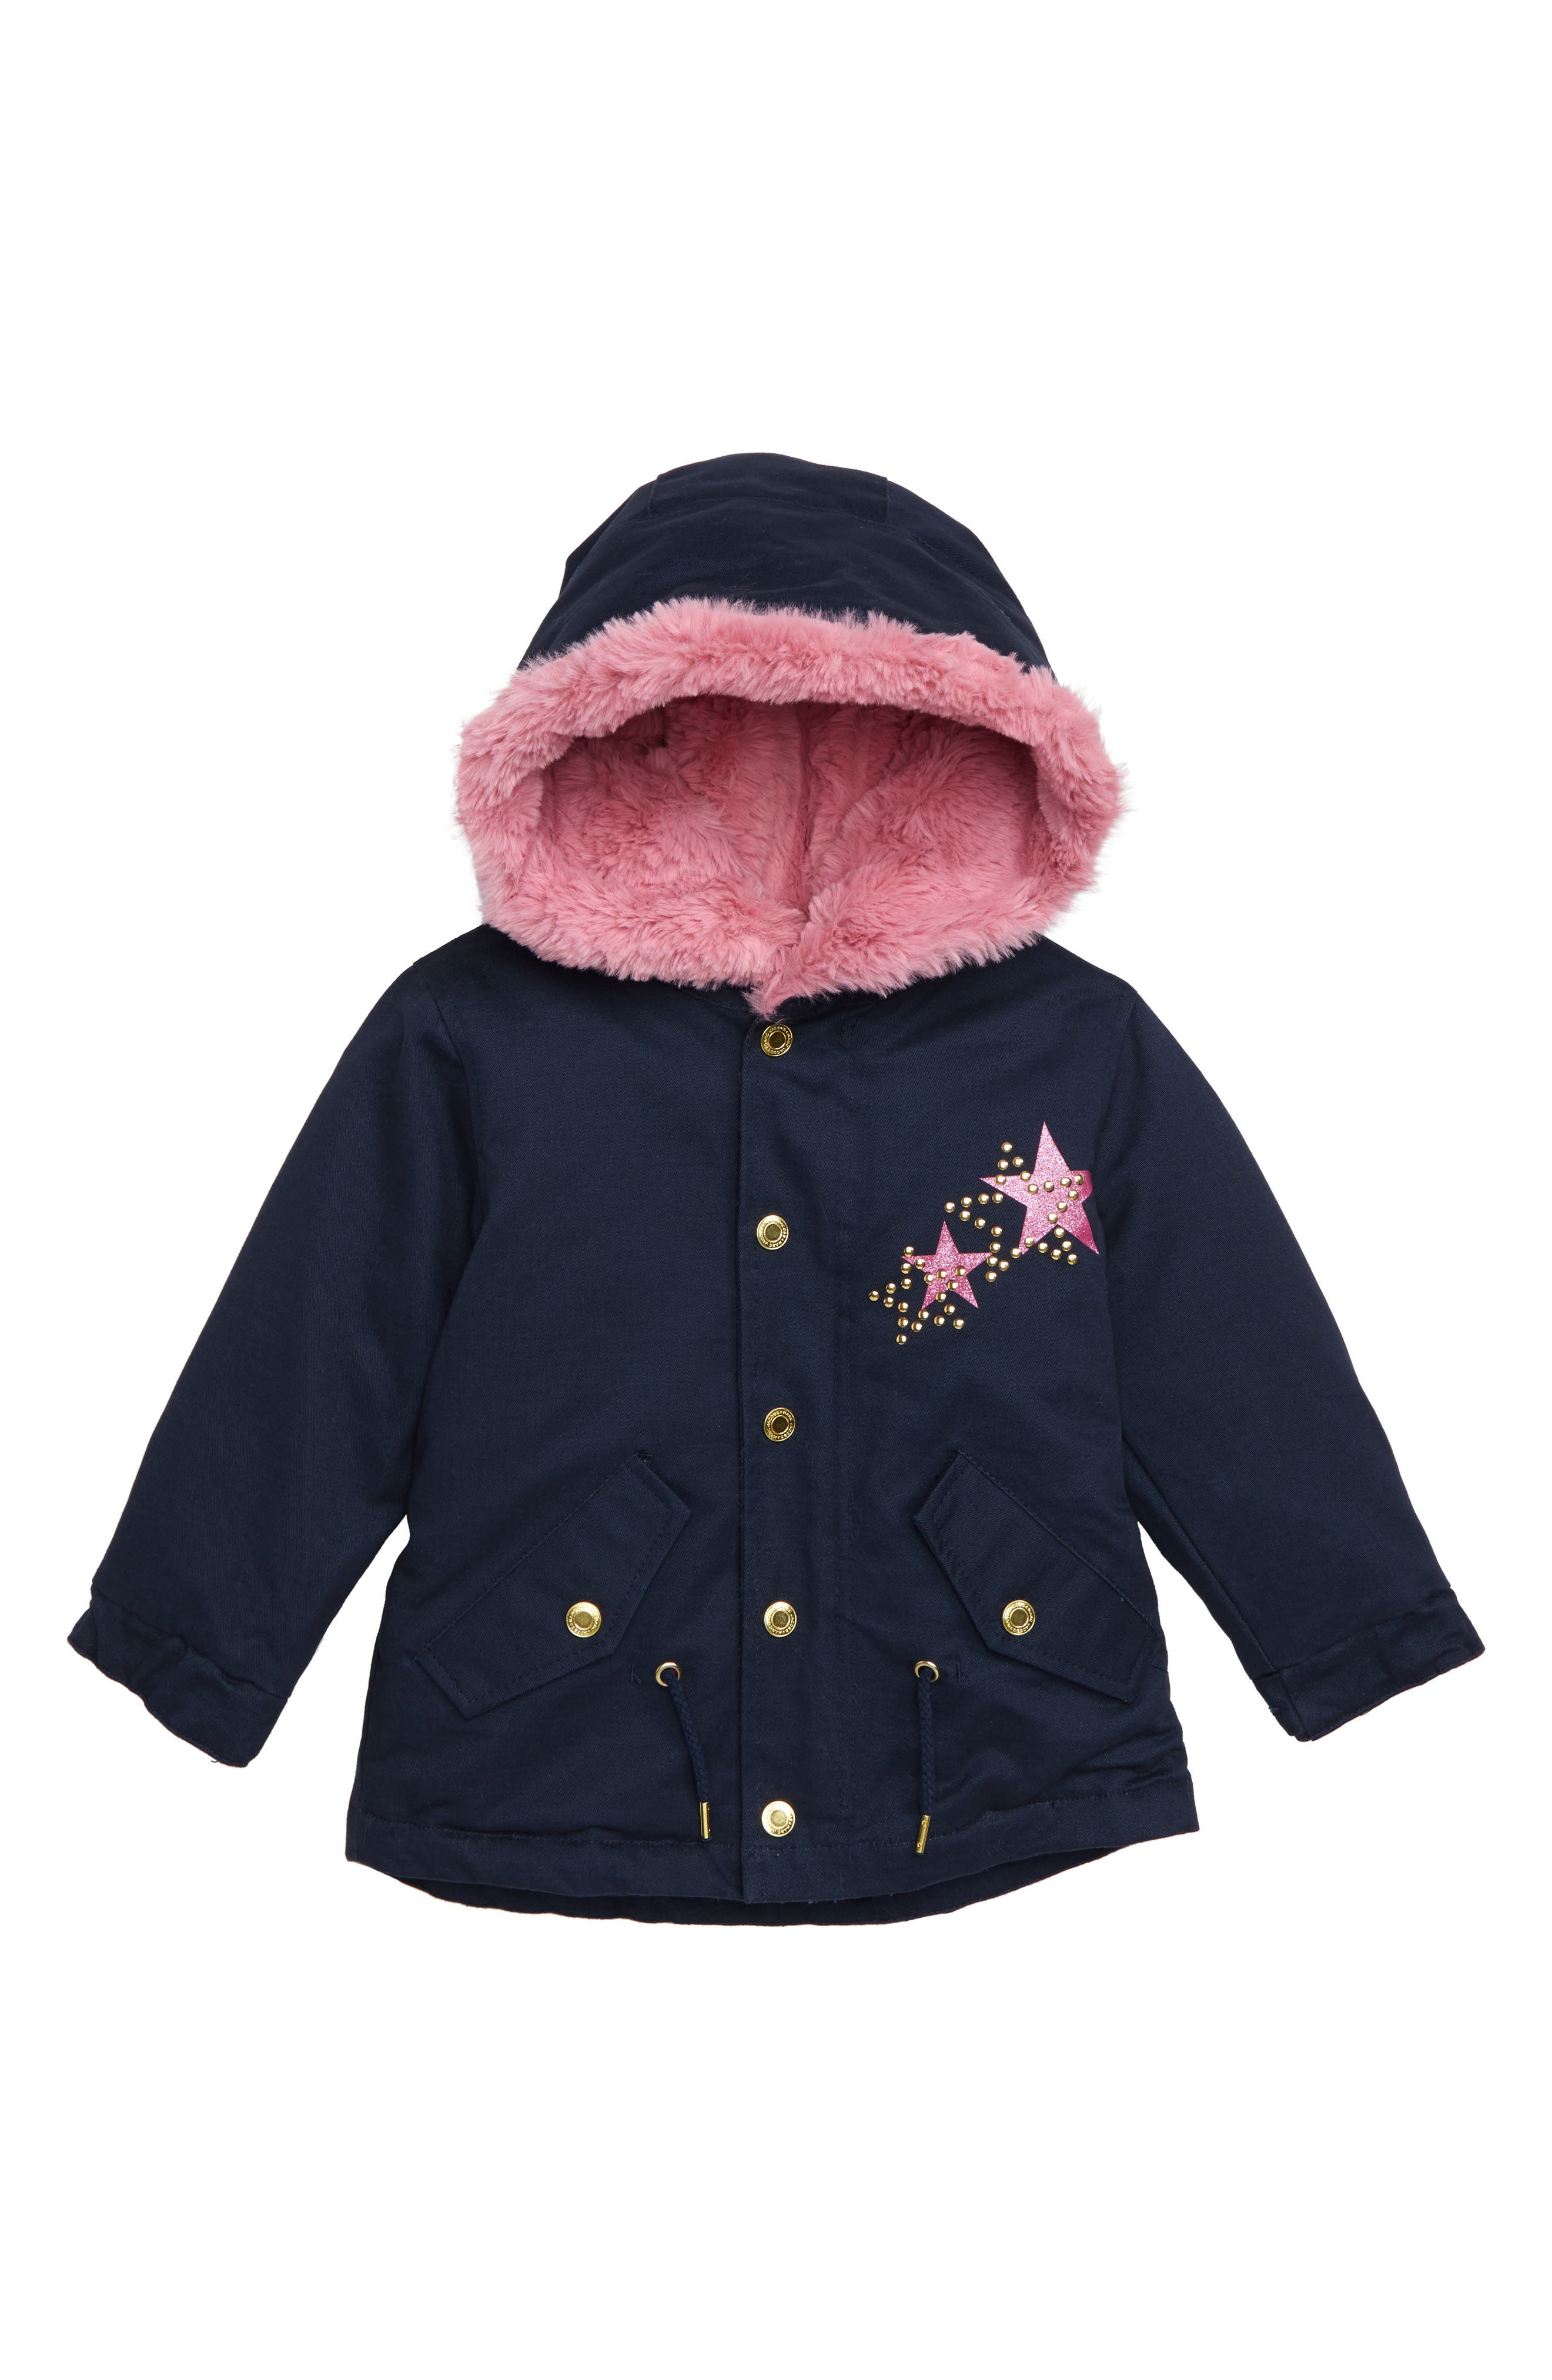 Hooded Parka with Glitter,                         Main,                         color, DARK INDIGO